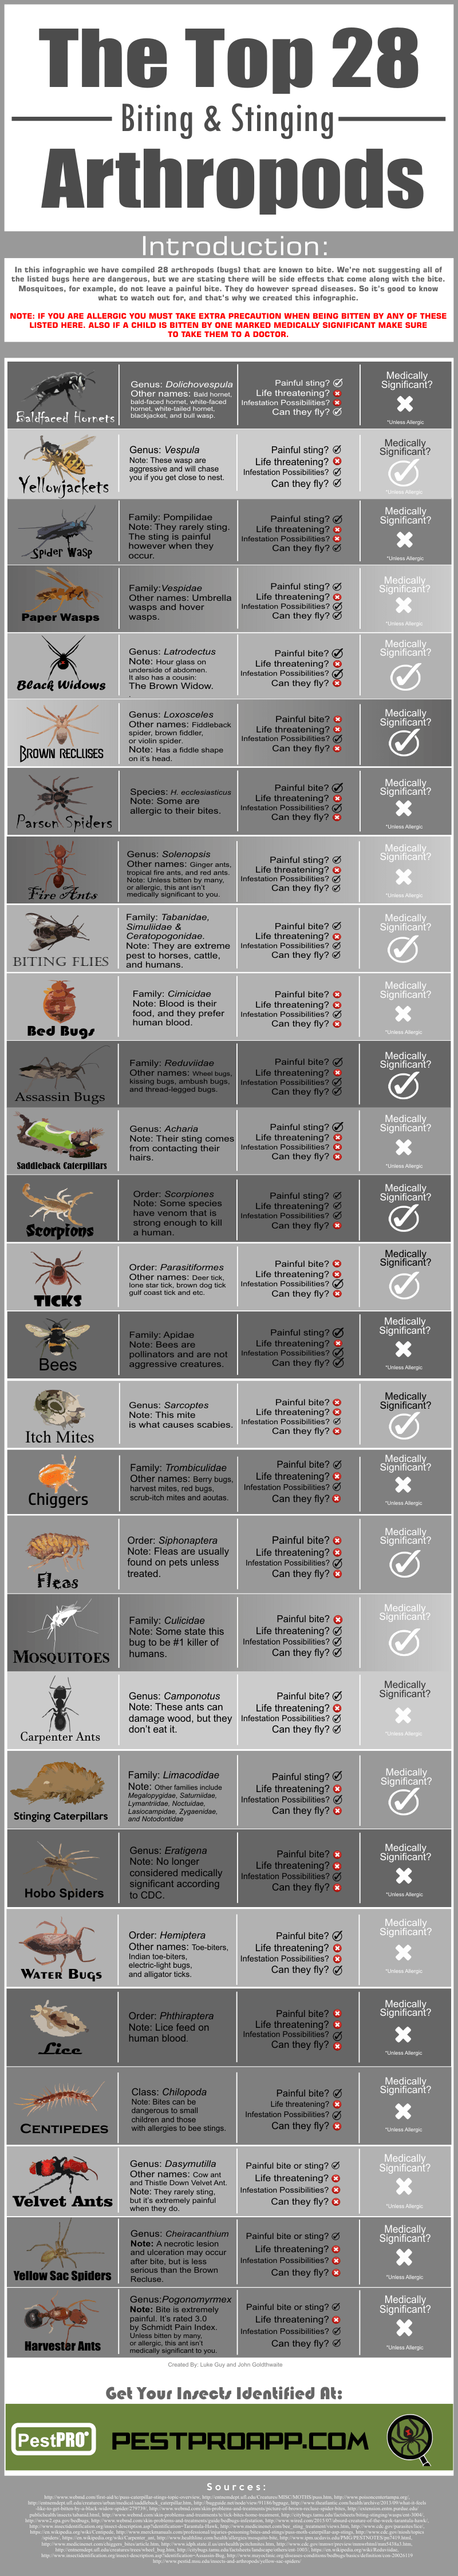 insects that bite and sting